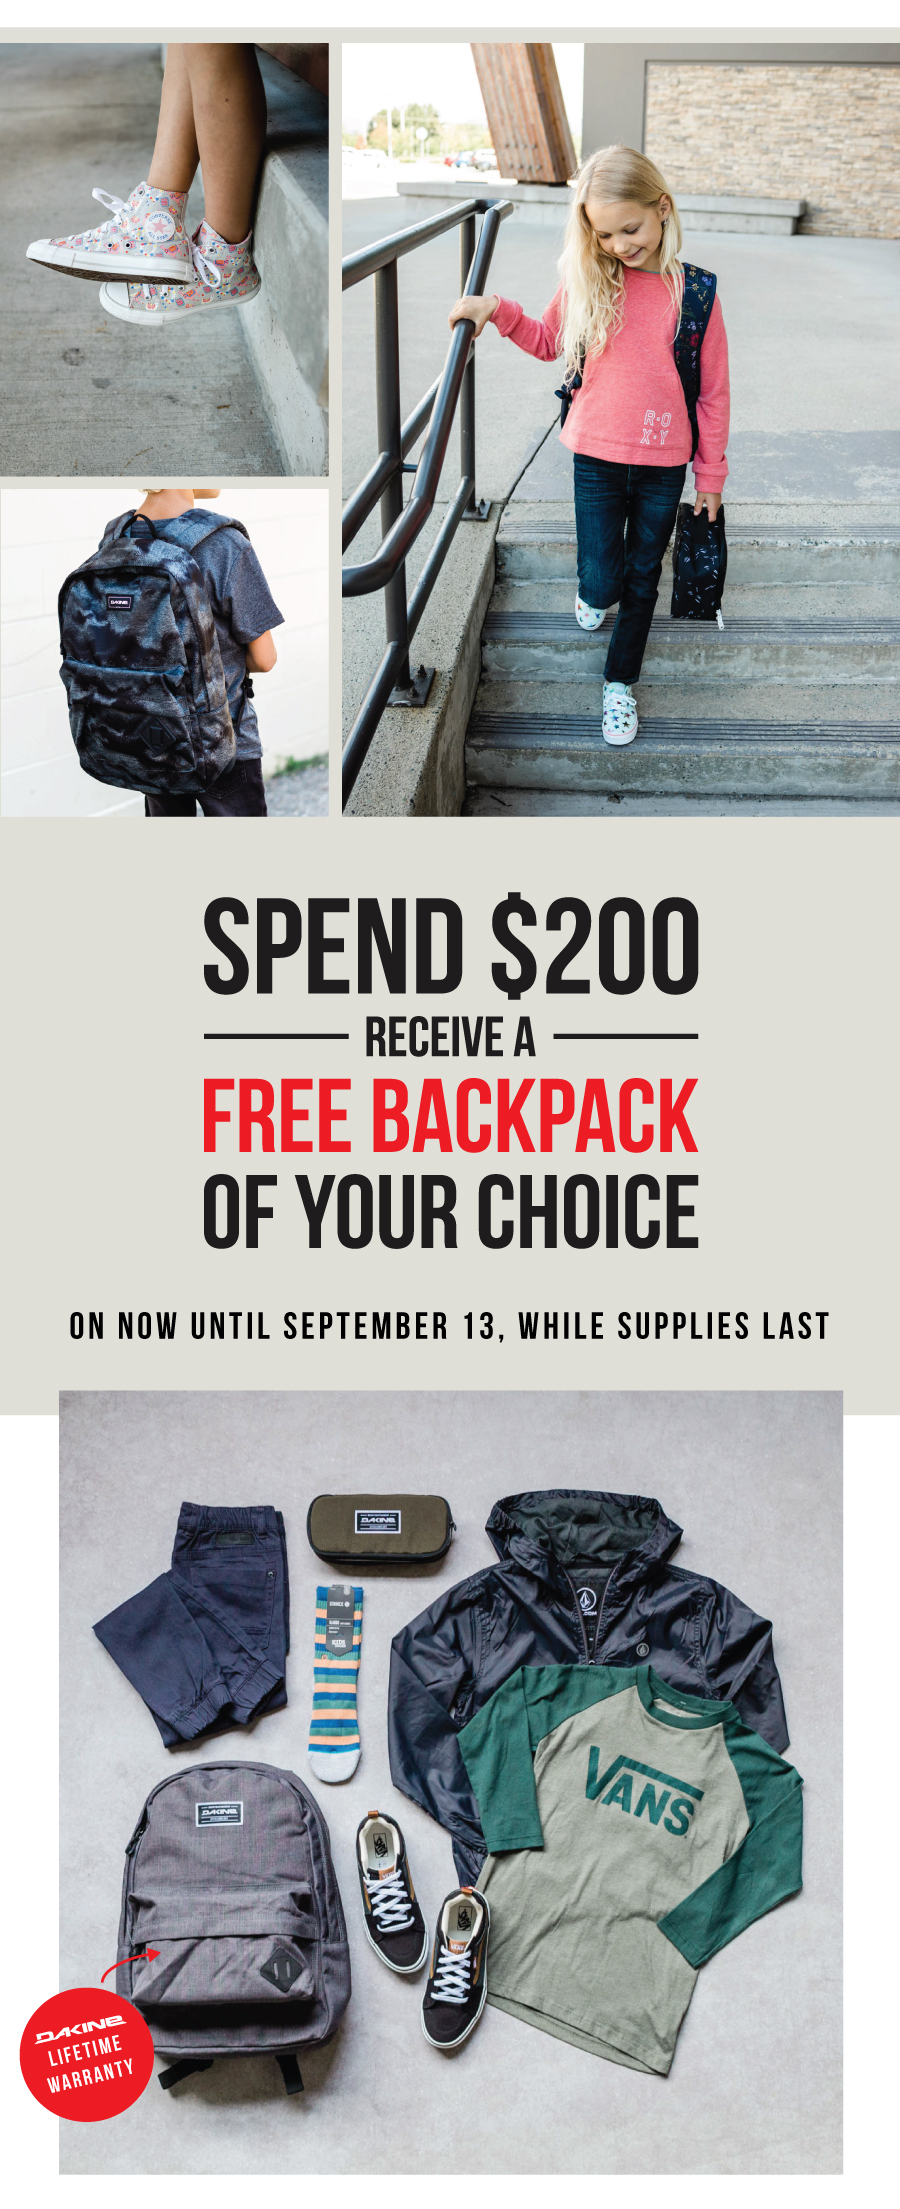 Spend $200 get a FREE BACKPACK at Premium Label Outlet